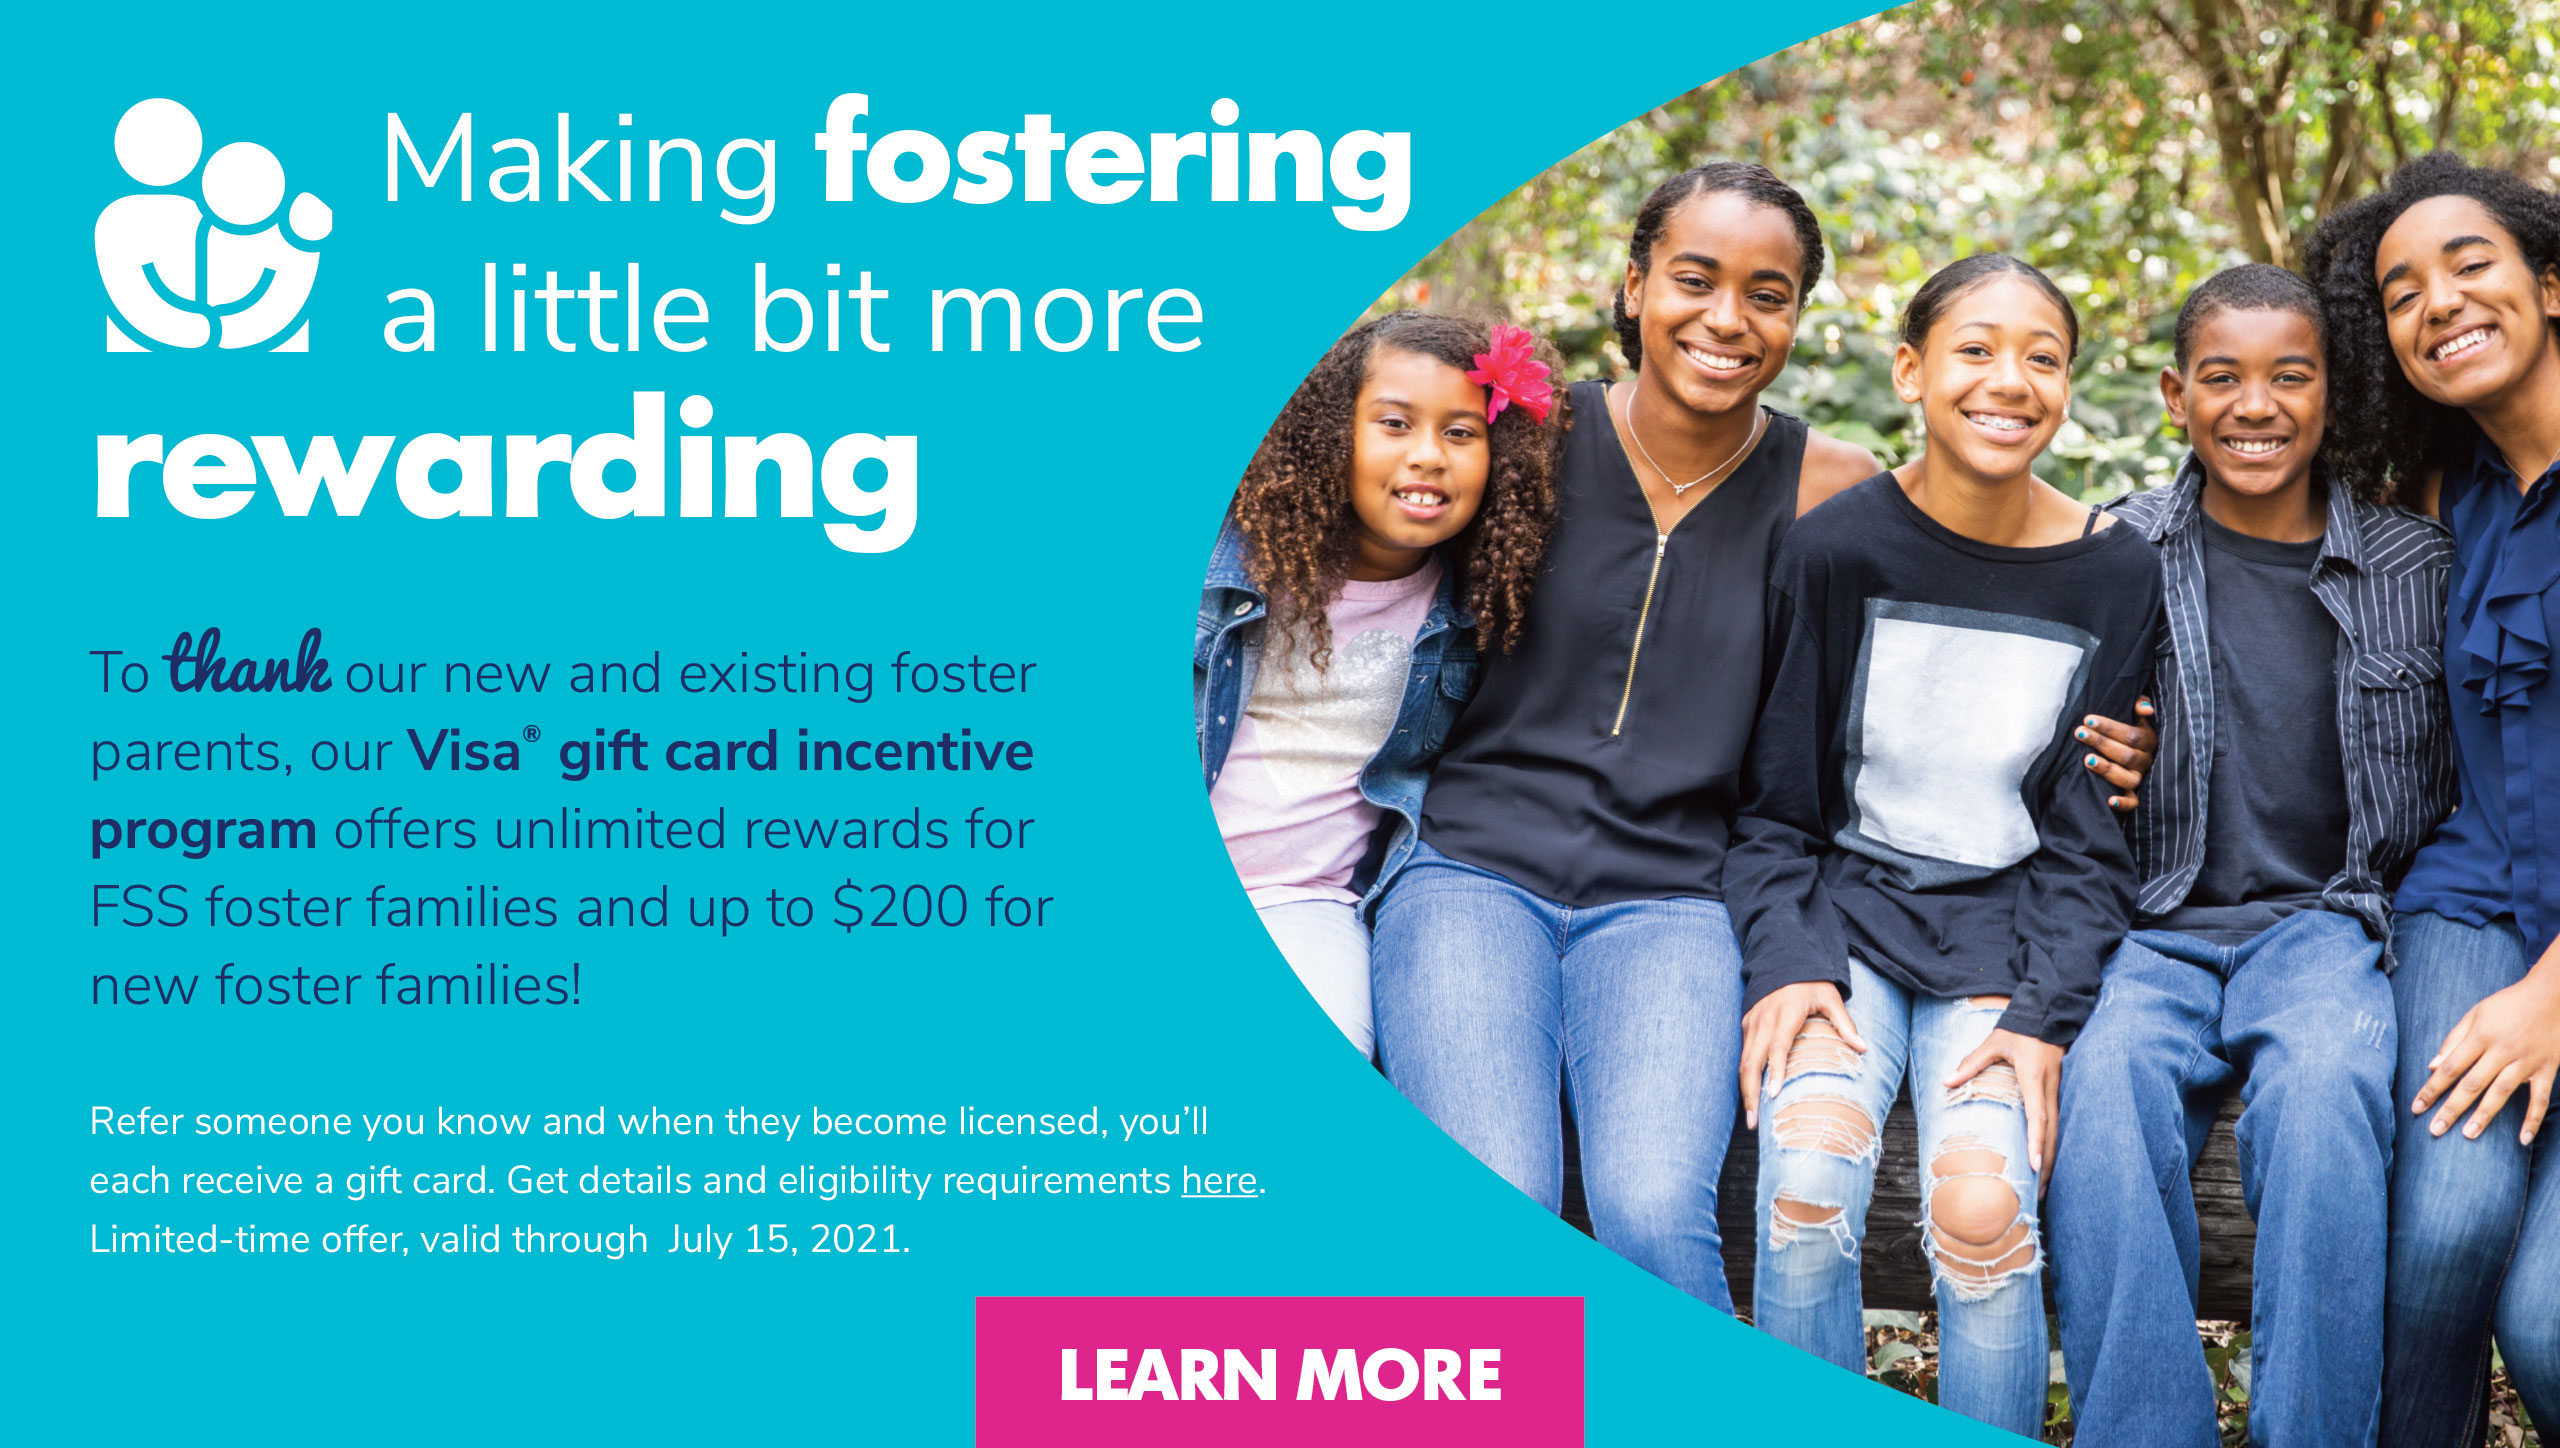 Making fostering a little bit more rewarding- foster family referral program Family Support Services Jacksonville Florida